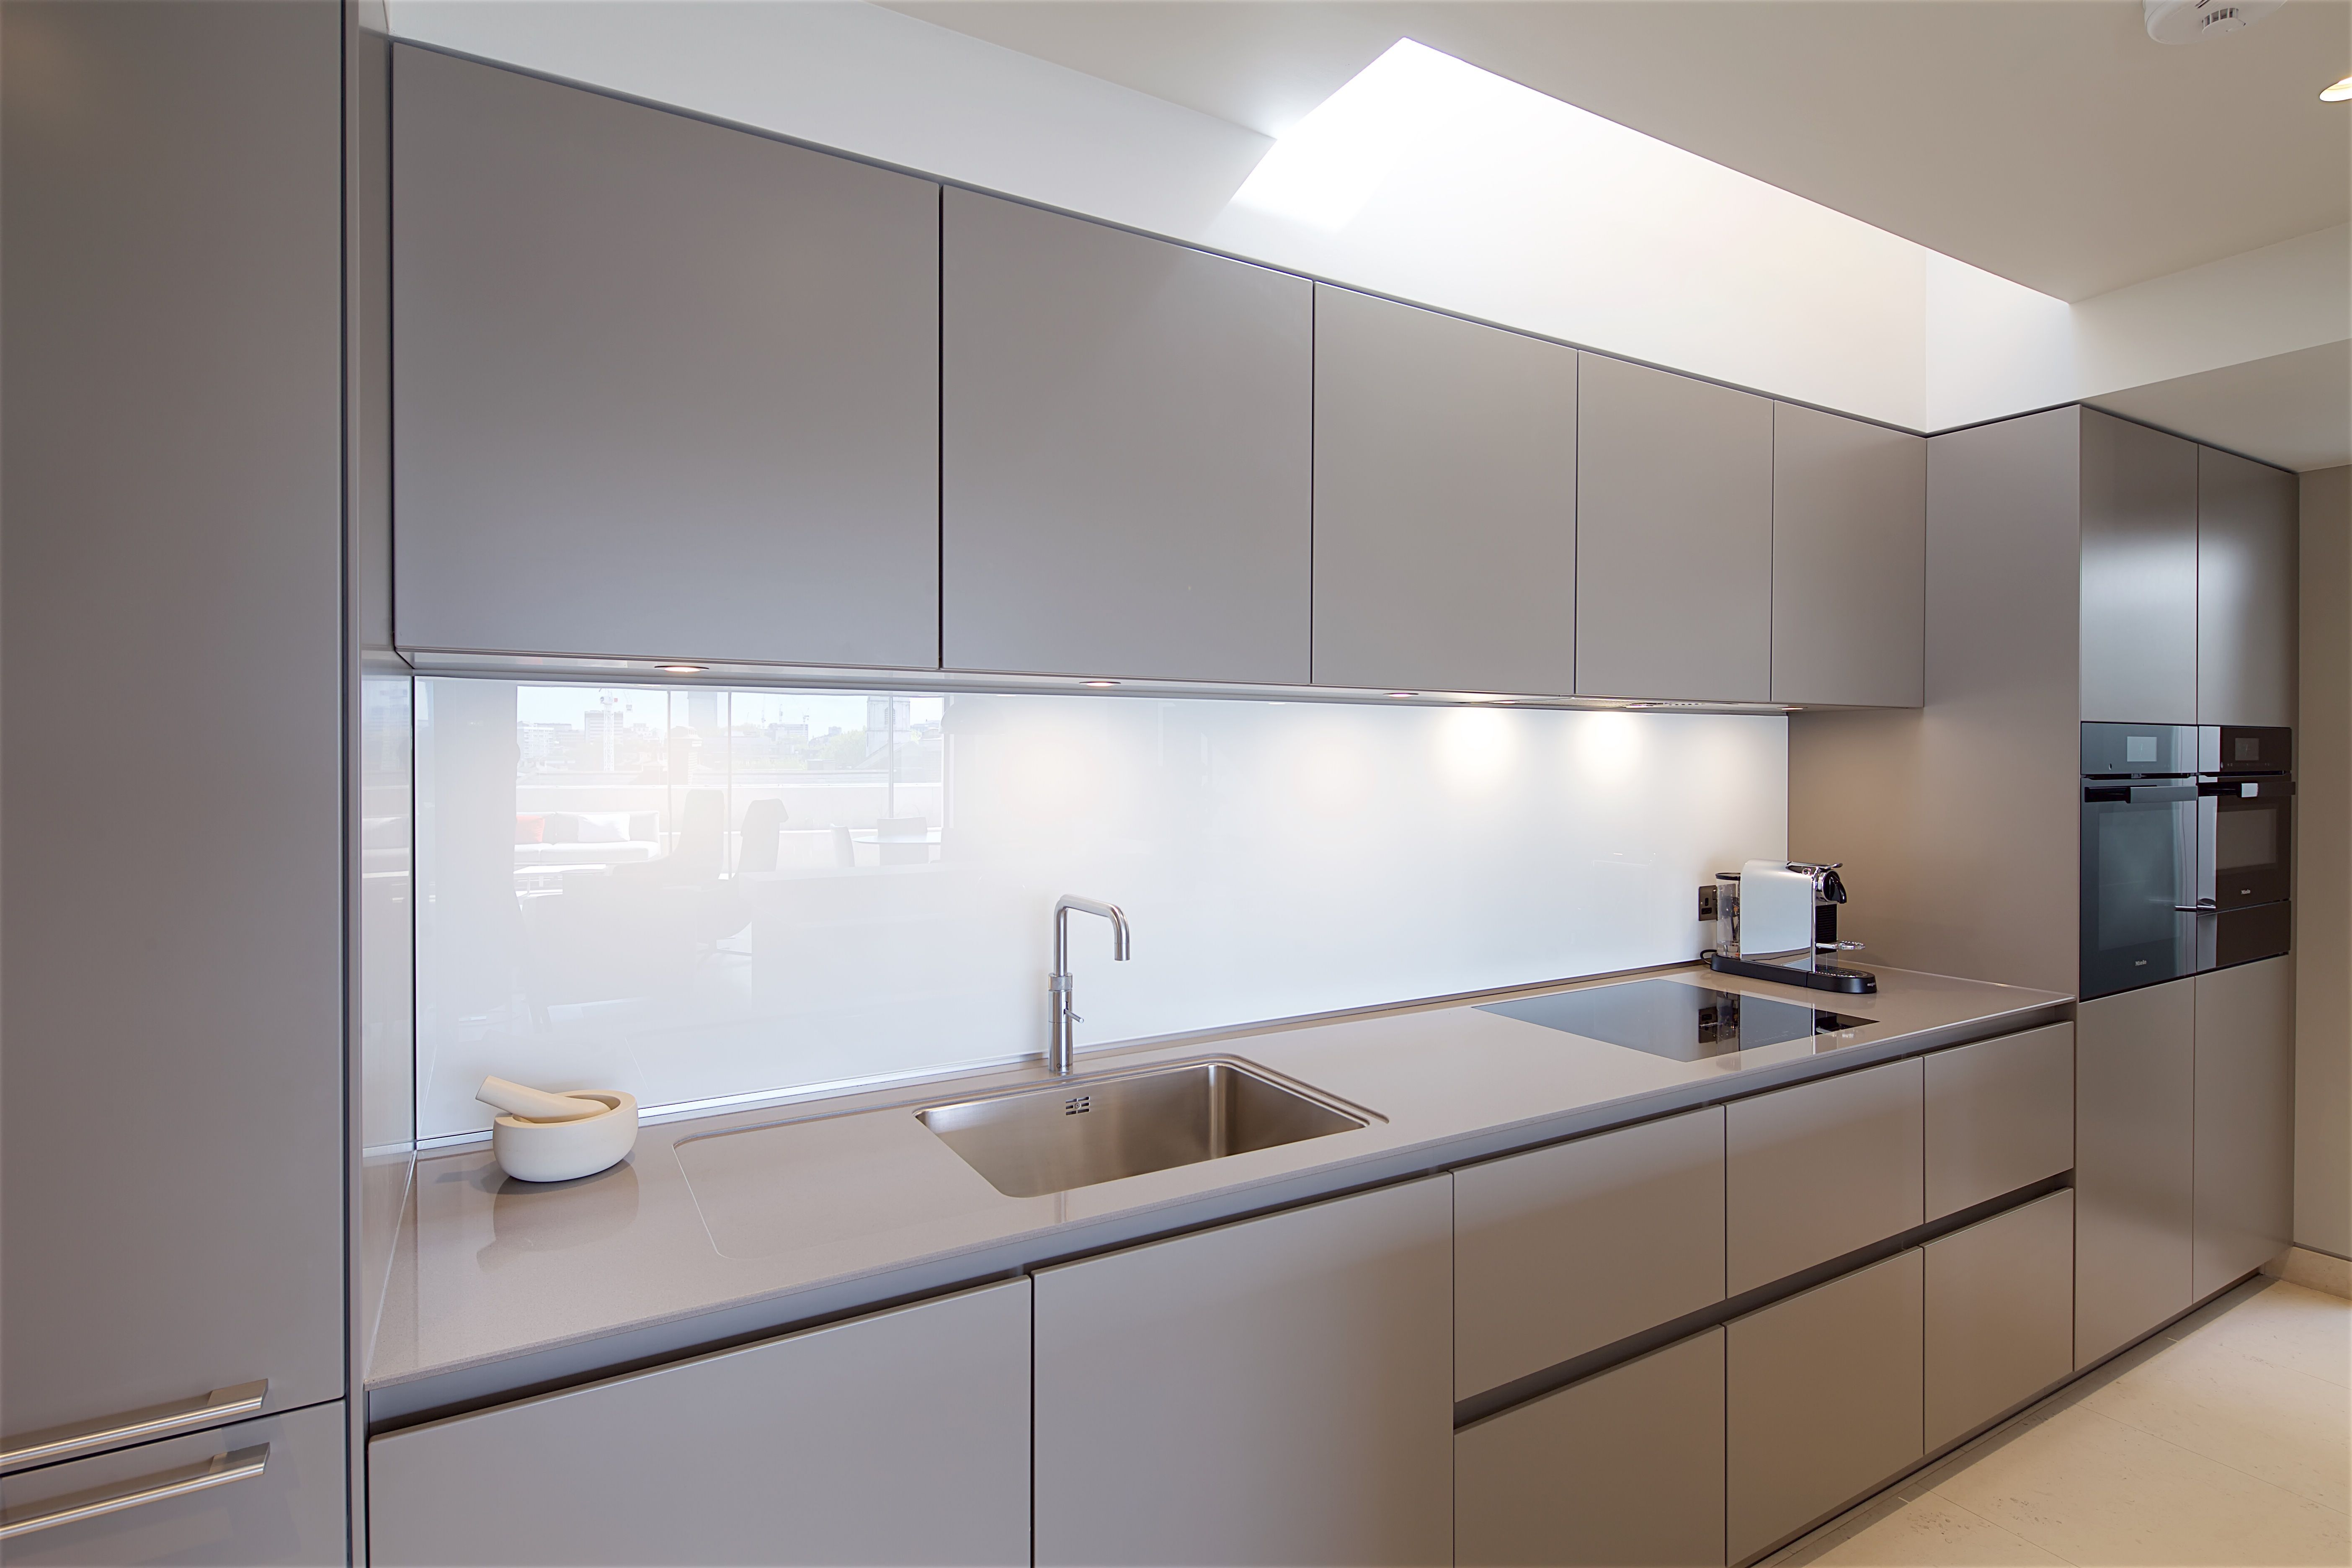 Cabinet Design Bulthaup B3 Kitchen In City Apartment - Matt Lacquer In